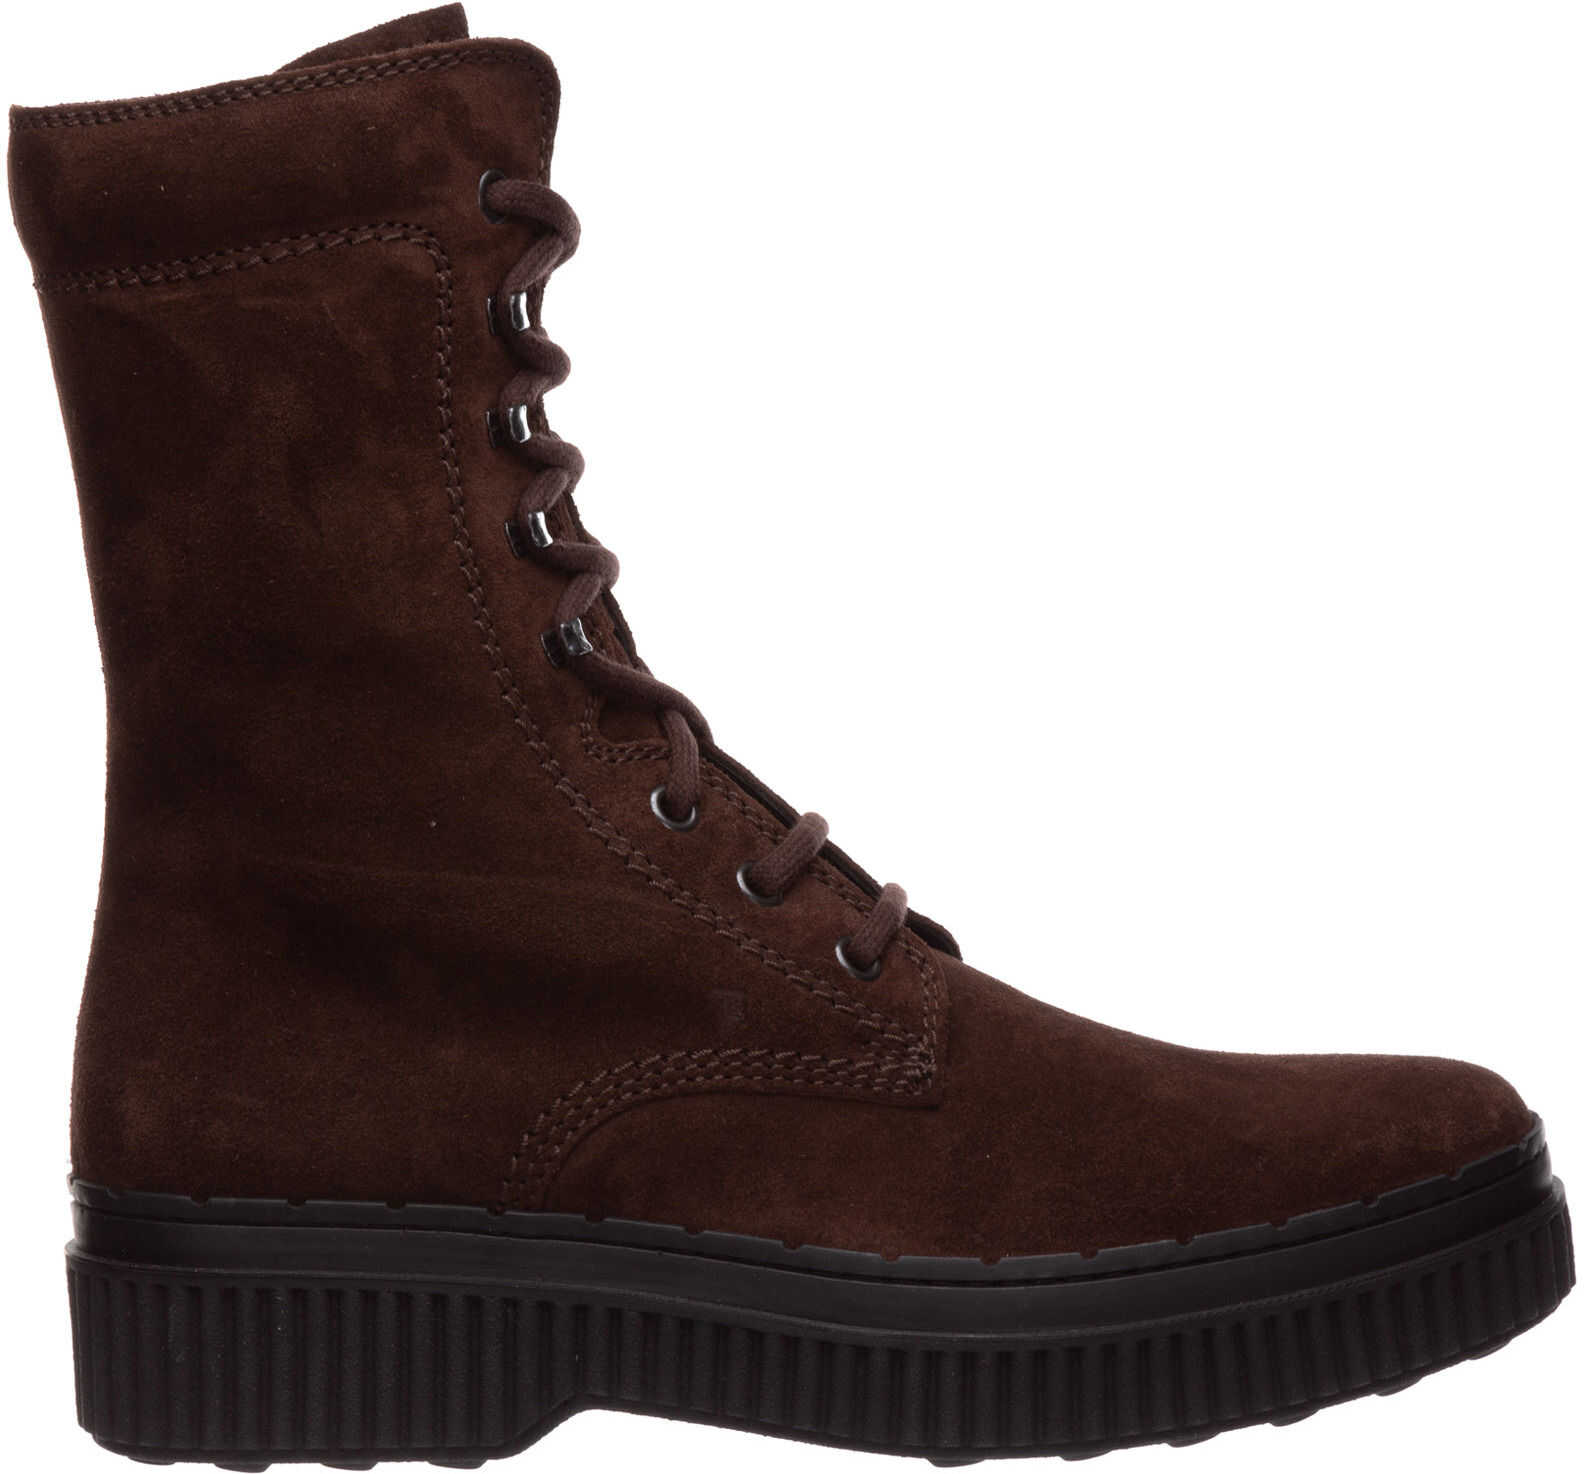 TOD'S Boots Booties XXW39A00500RE0S611 Brown imagine b-mall.ro